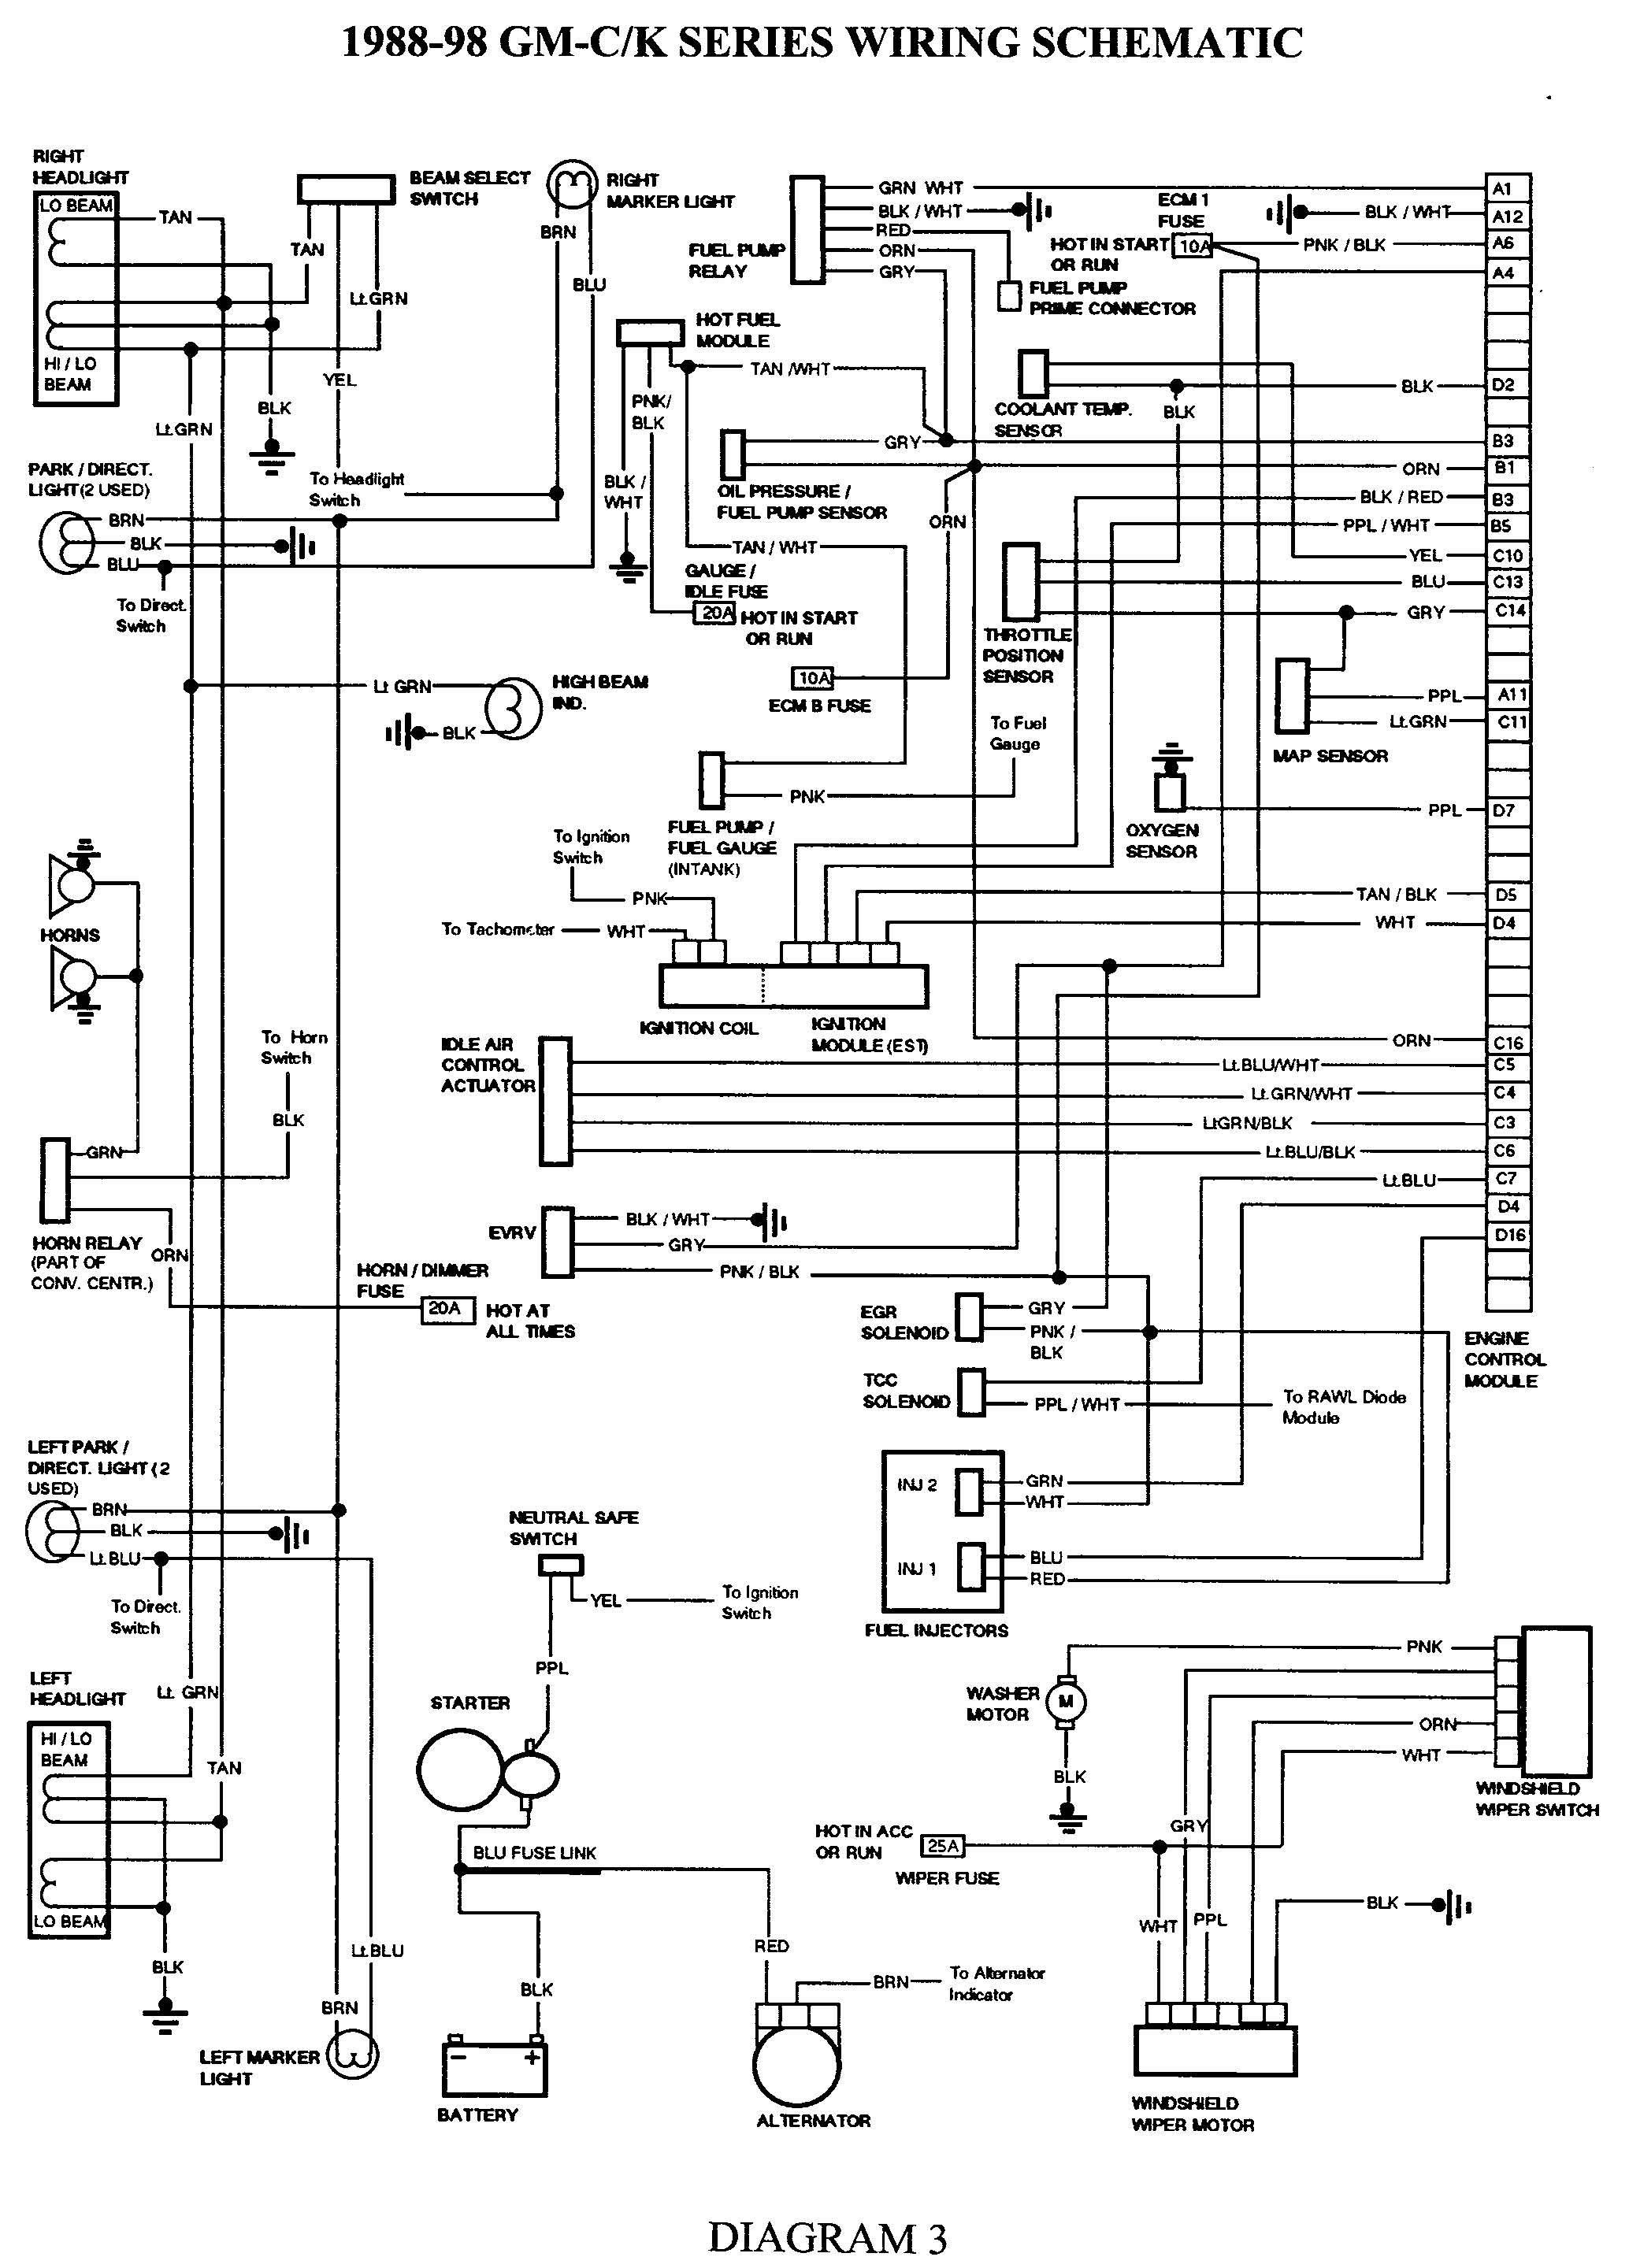 2006 chevrolet uplander wiring diagram - universal wiring diagrams  visualdraw-realize - visualdraw-realize.sceglicongusto.it  diagram database - sceglicongusto.it